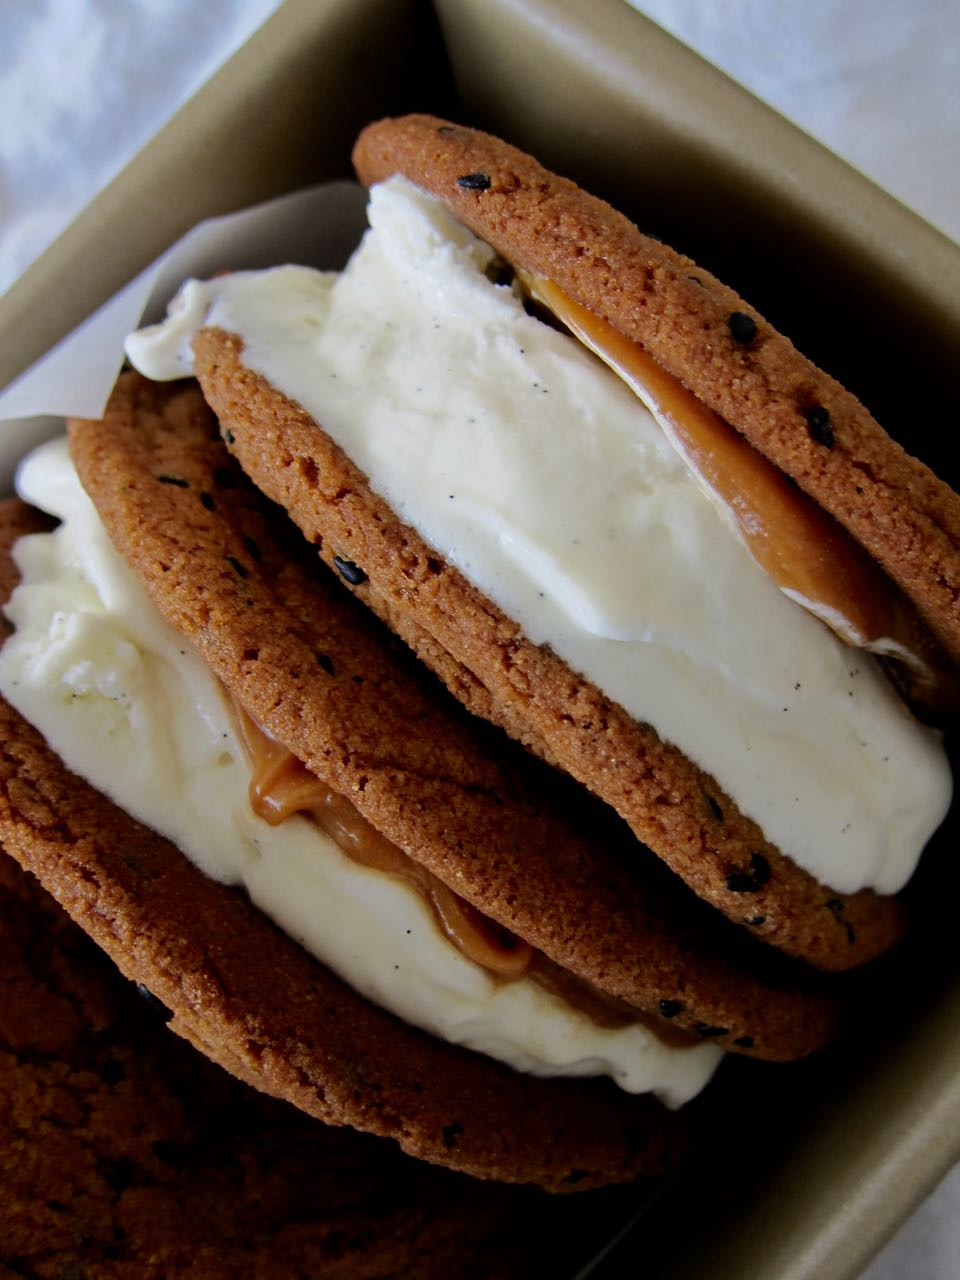 Black Sesame & Vanilla Ice Cream Sandwiches